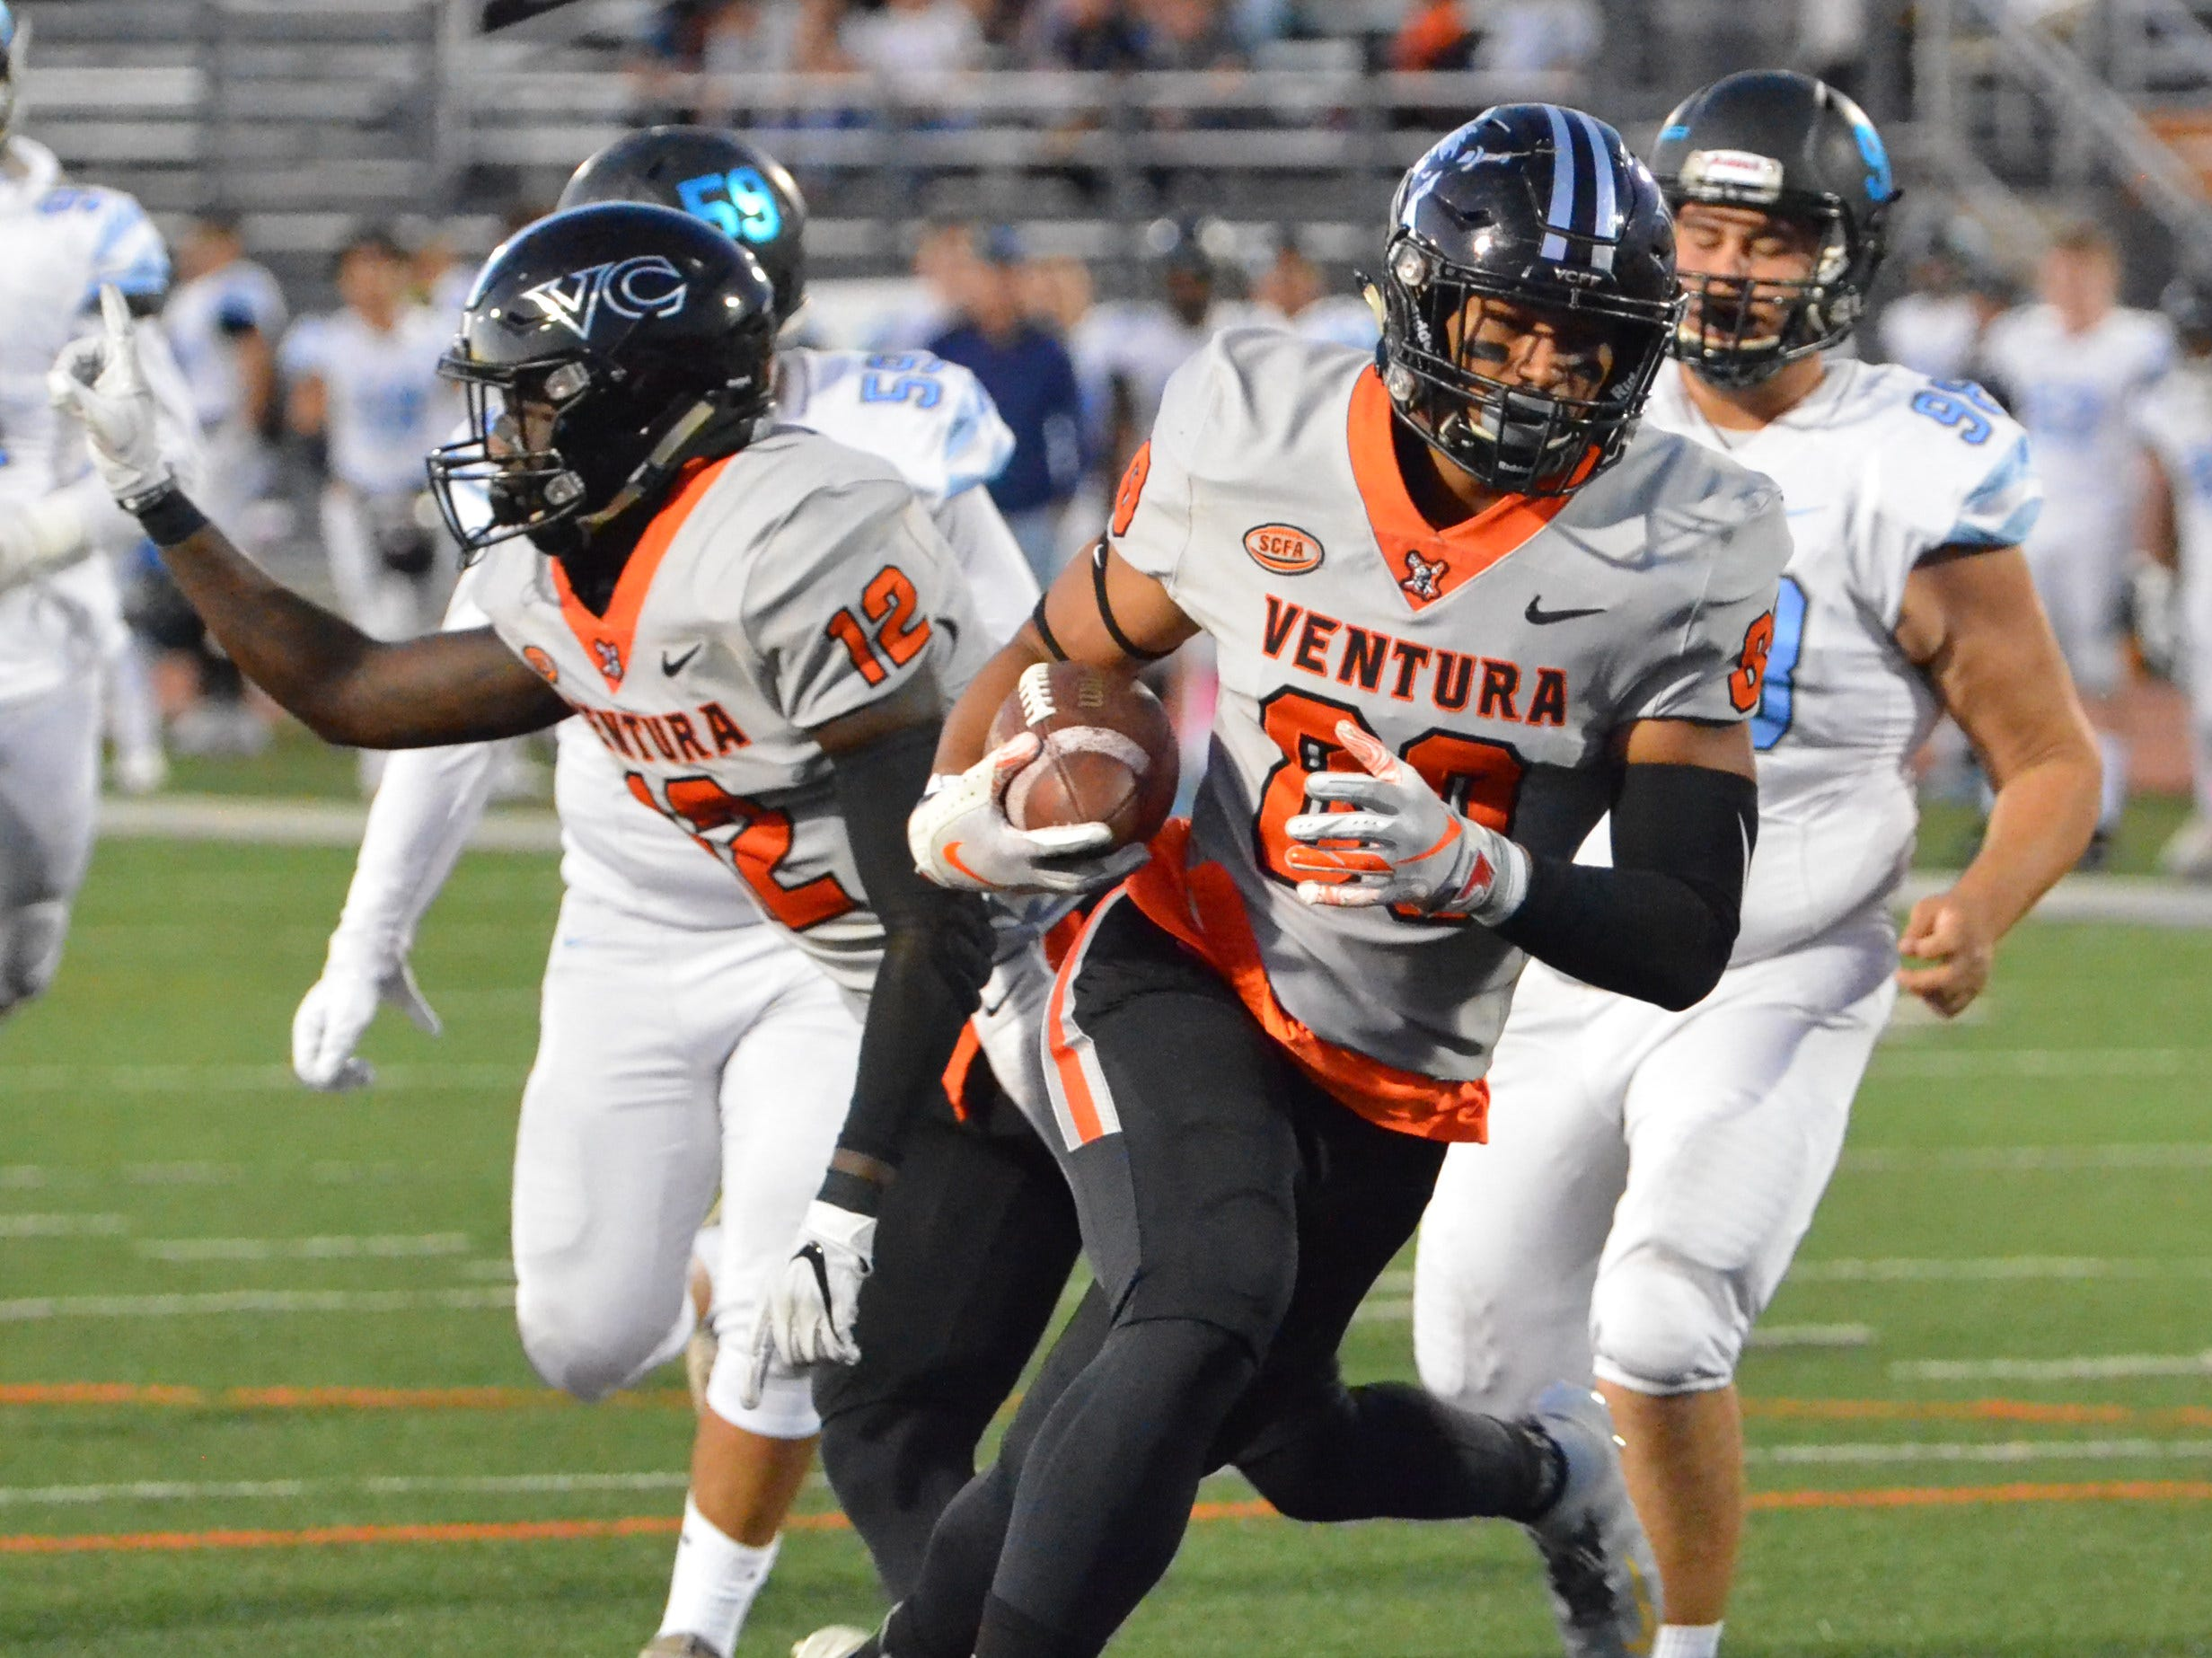 Ventura College's Jared Thomsen returns a blocked punt for a touchdown in the 51st Citrus Cup game on Saturday night at the VC Sportsplex. VC won 62-7.